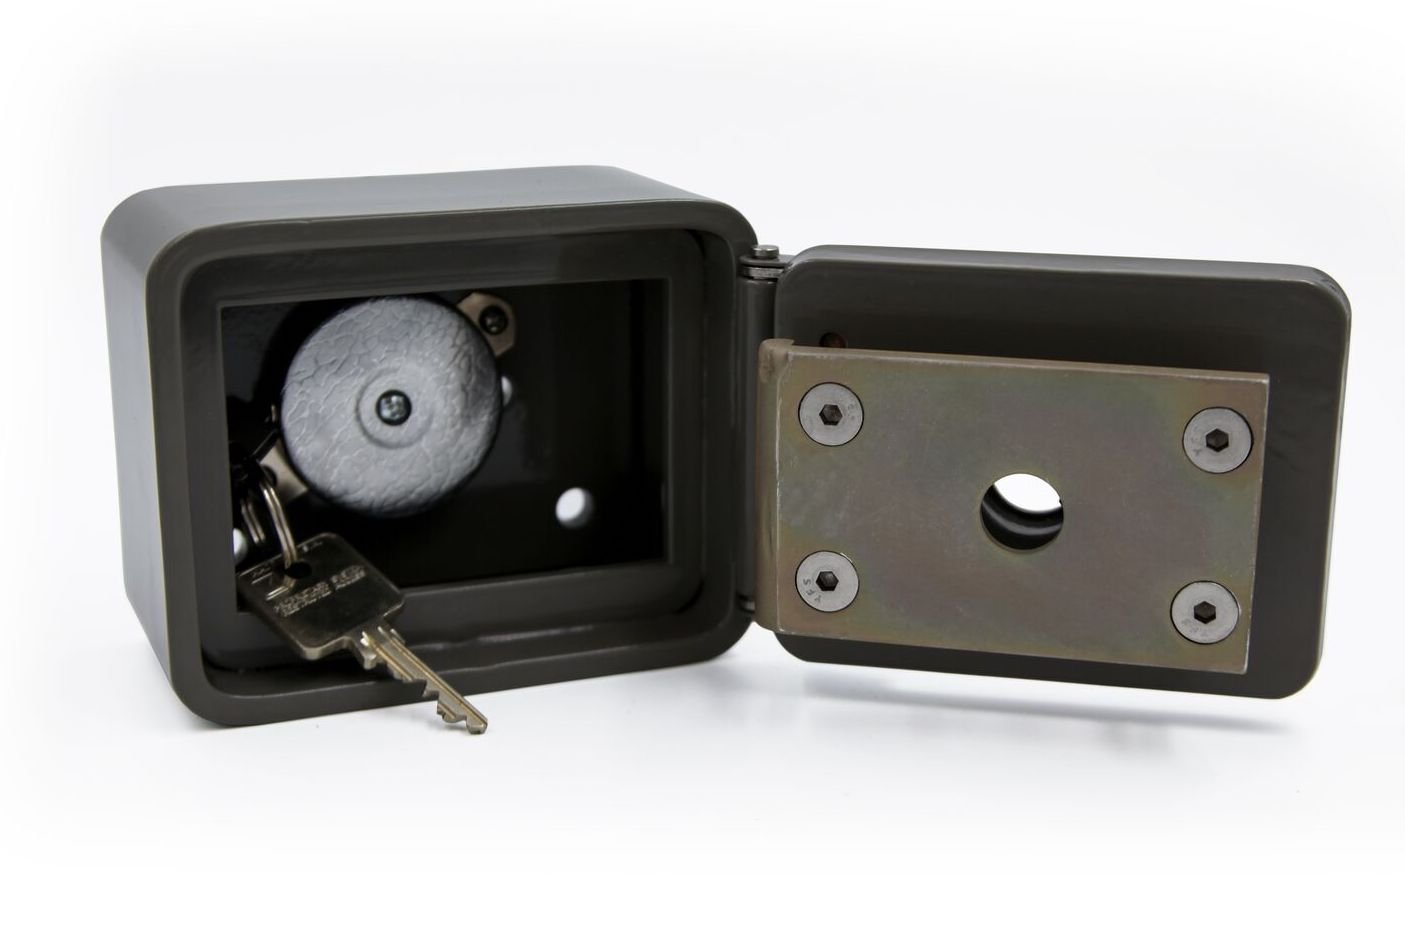 Knox U.S. Postal Key Keeper, Key Lock Box for U.S. Postal Use ONLY Building Access, Surface Mount, with Key Retractor Cable (NOT for FIRE DEPT OR EMS)